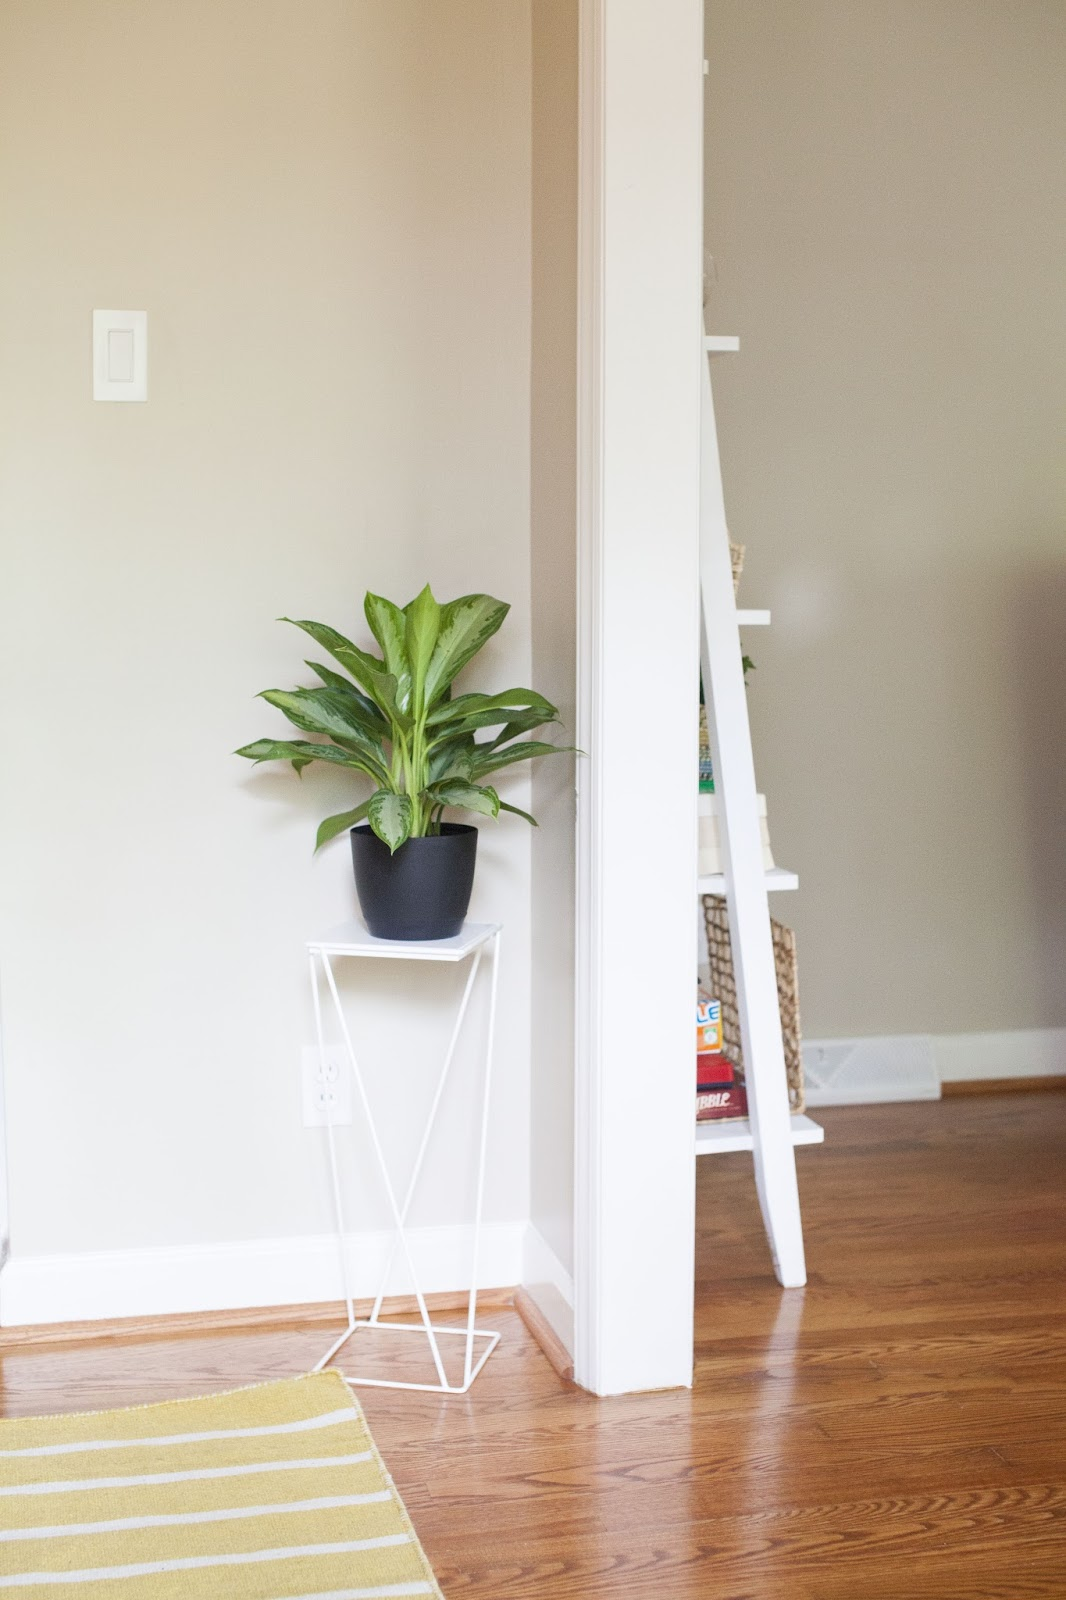 Entryway essentials design post interiors your entry way is the first thing greeting people as they enter your house so it should definitely set the tone i dont have a formal entry or foyer but m4hsunfo